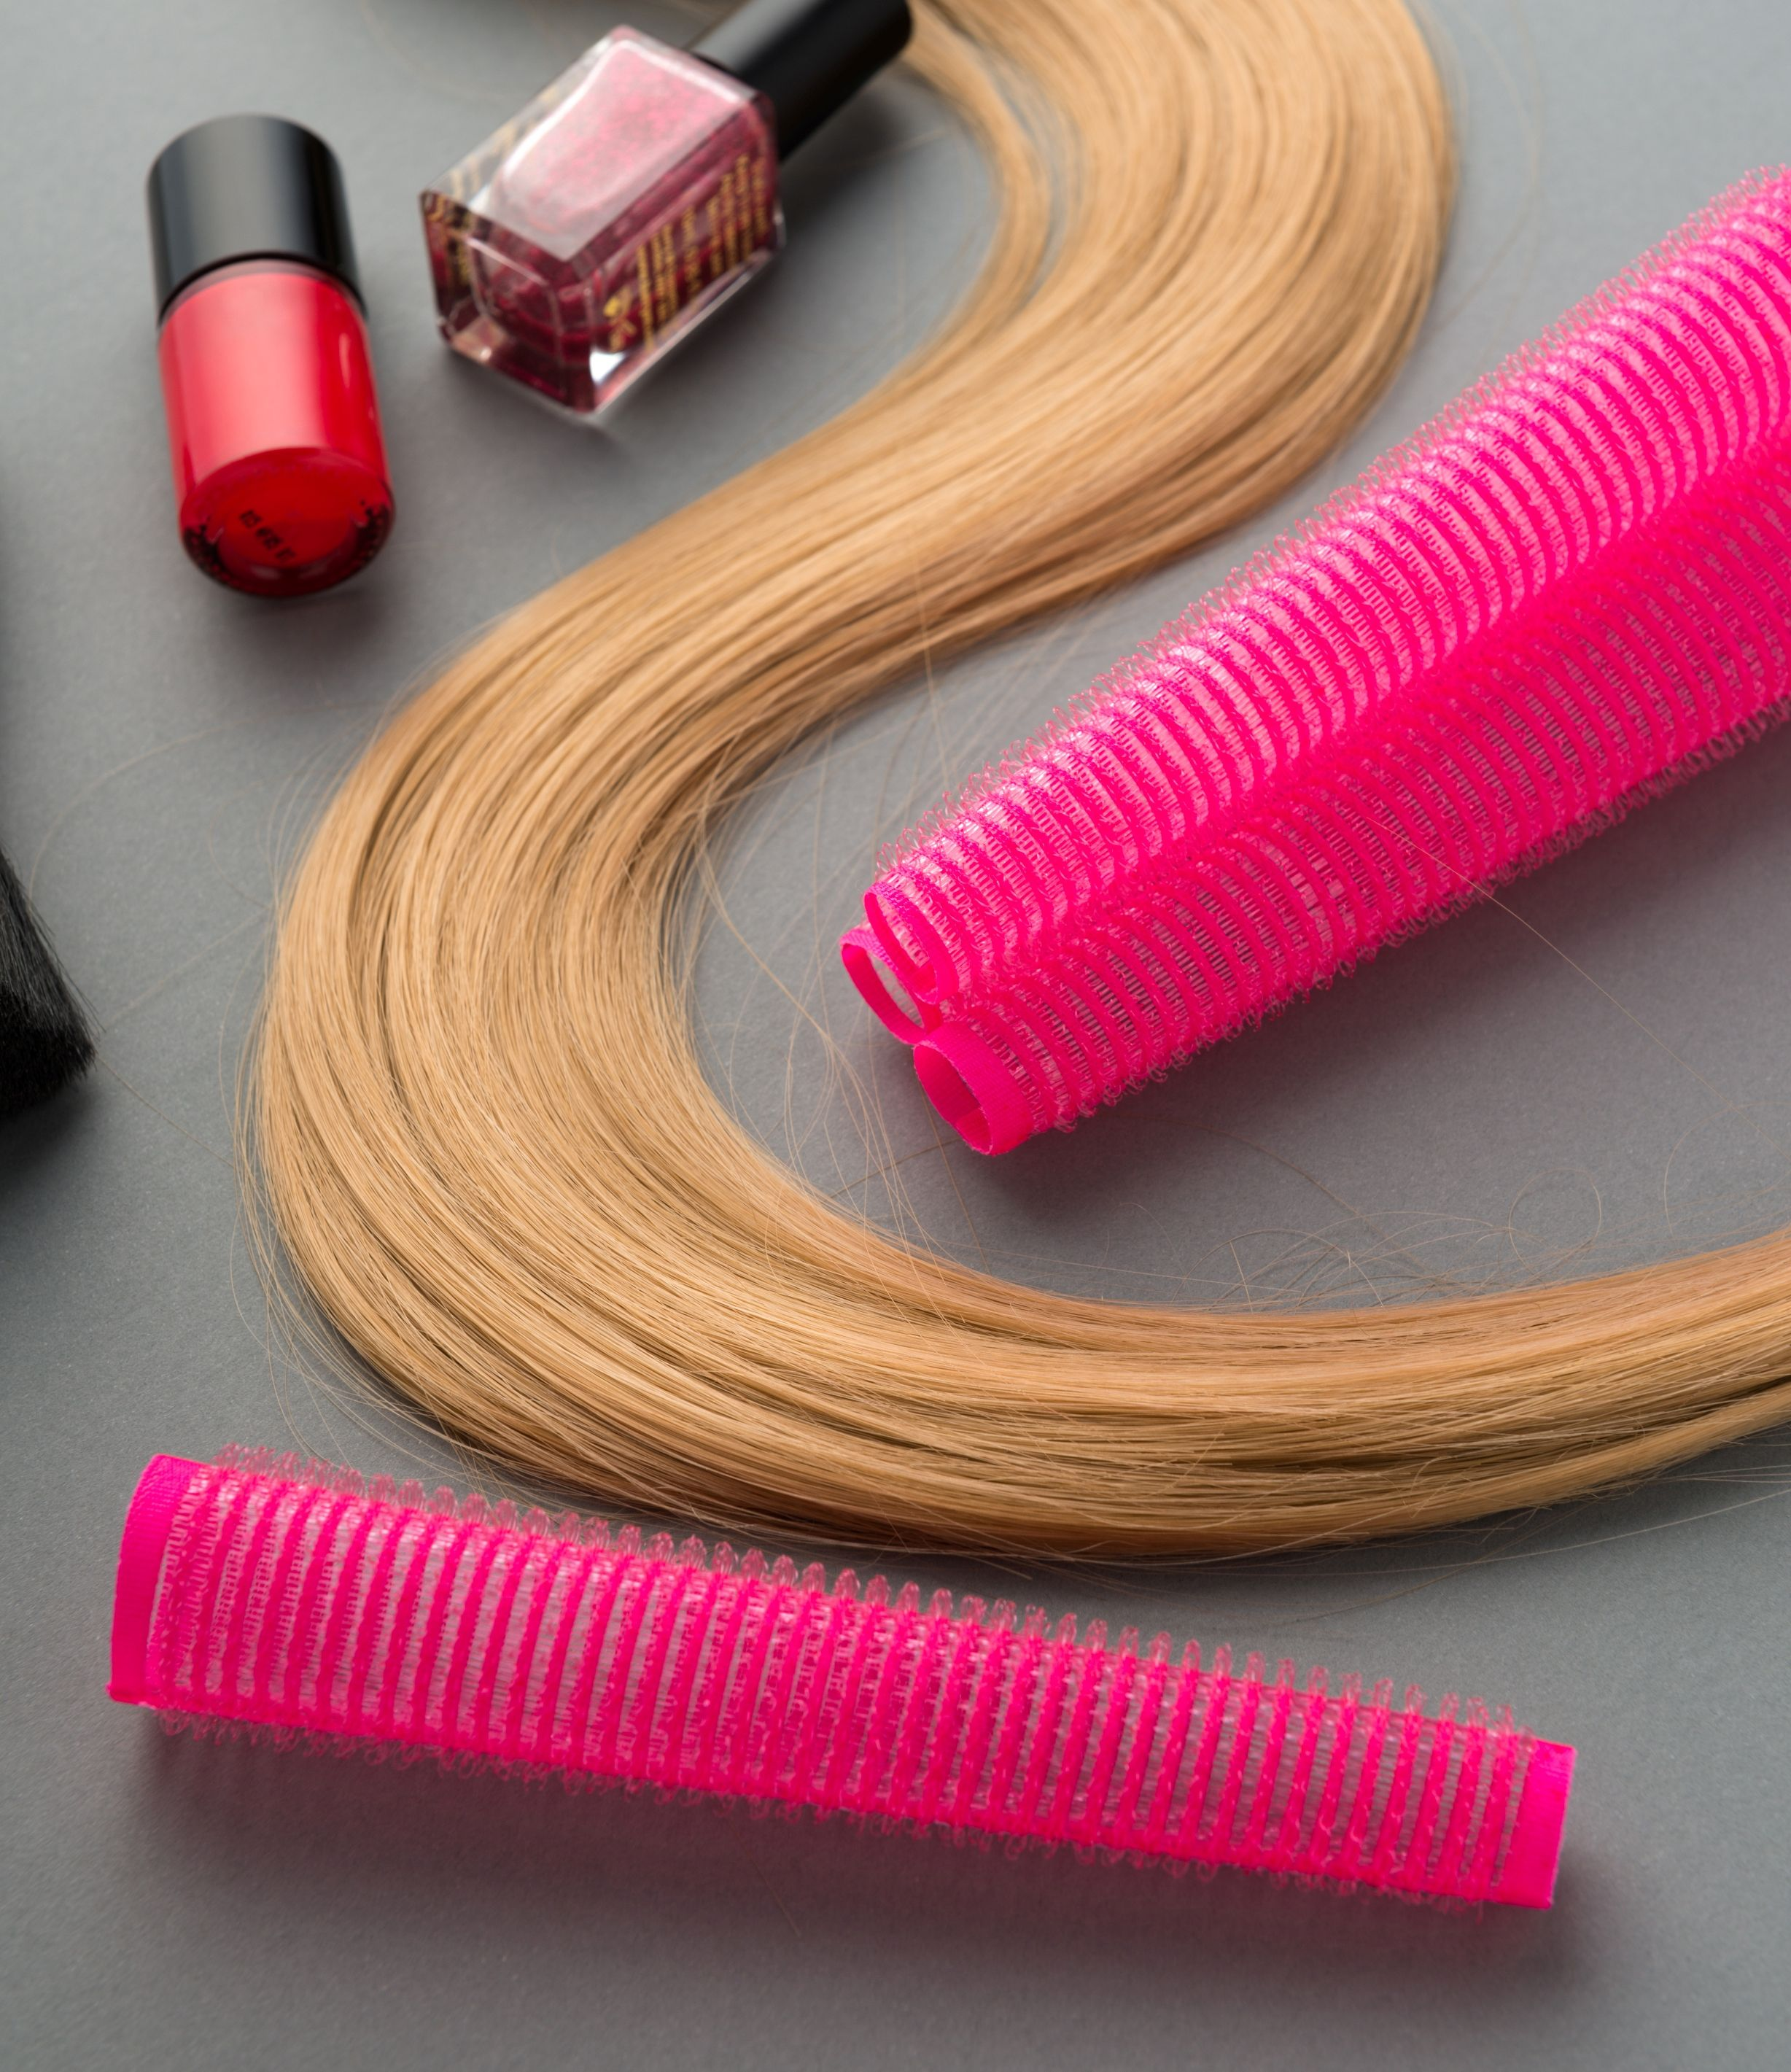 Bukli Haircare Curling Flutes Hair care, Fast hairstyles